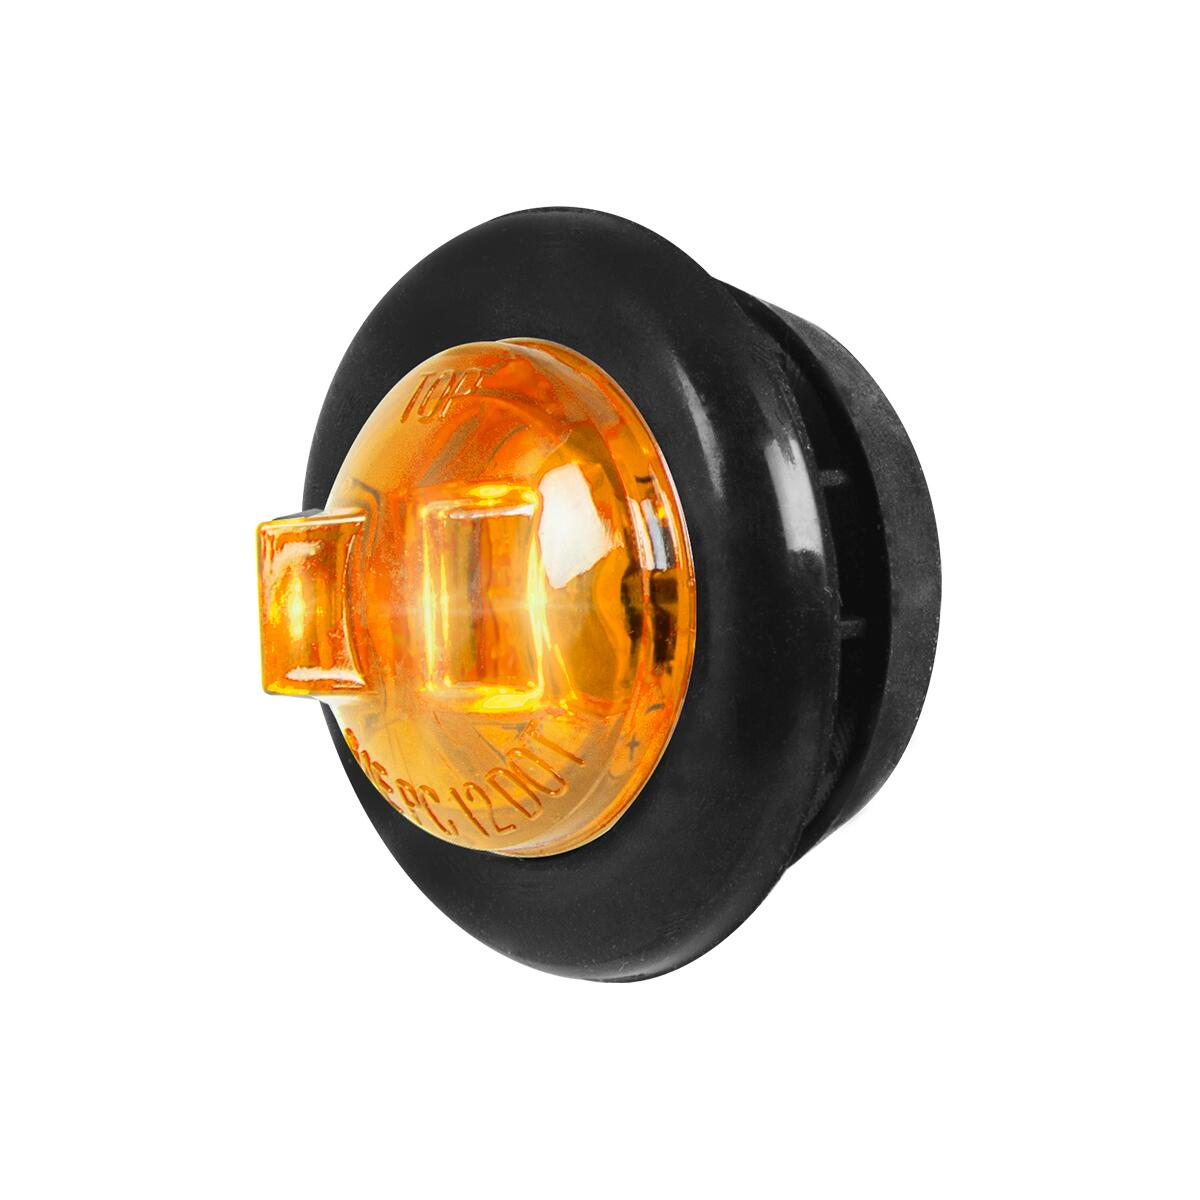 """UTVs Towing Trailers RVs ATVs GG Grand General 75280 1/"""" Dual Function Mini Wide Angle LED Light for Trucks"""